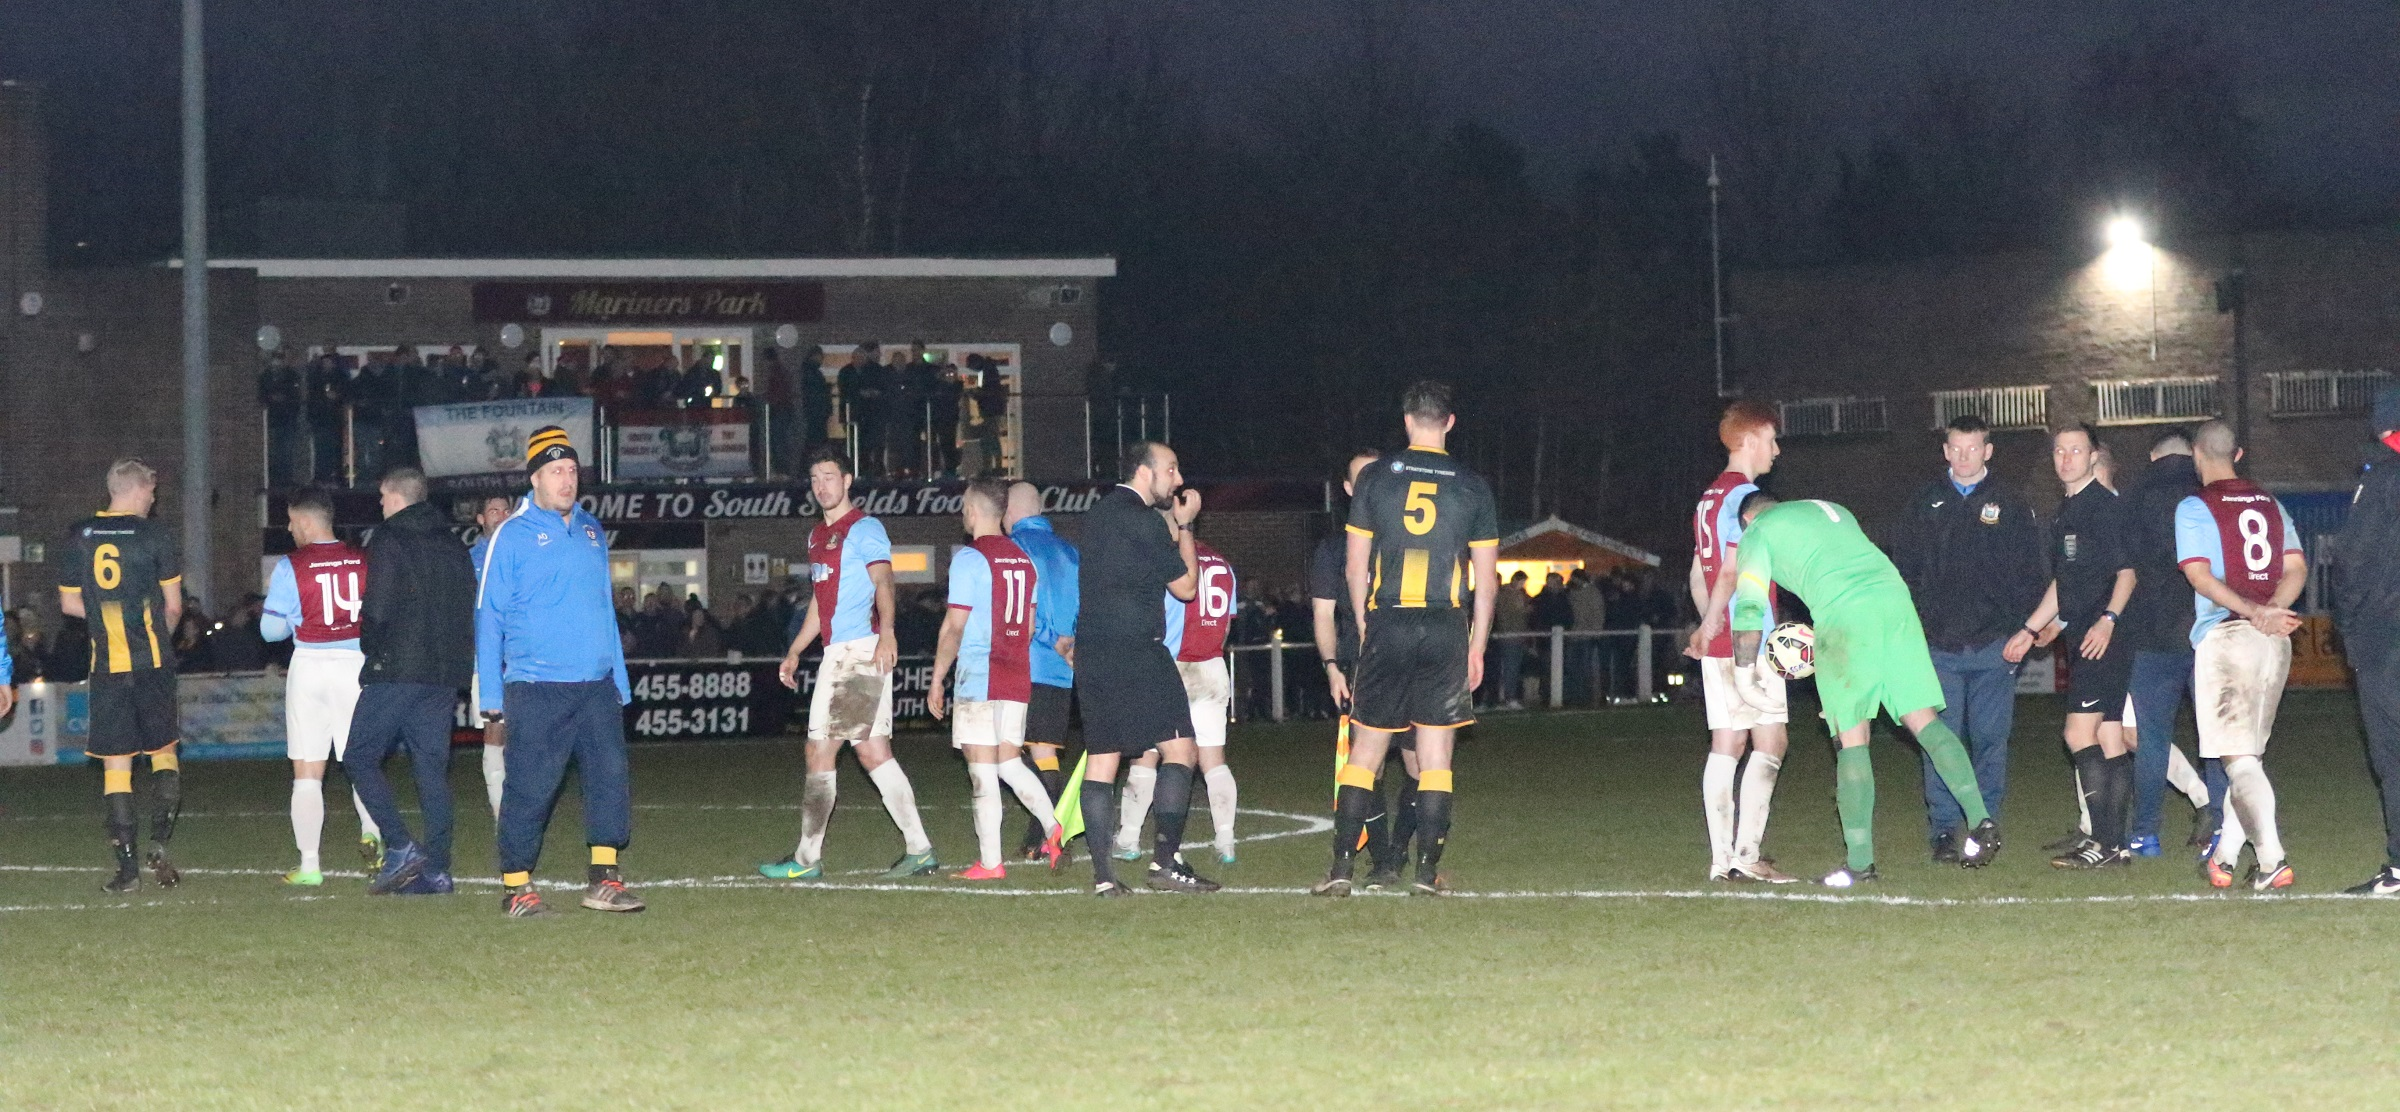 South Shields A-A Morpeth Town: Game abandoned as floodlights fail